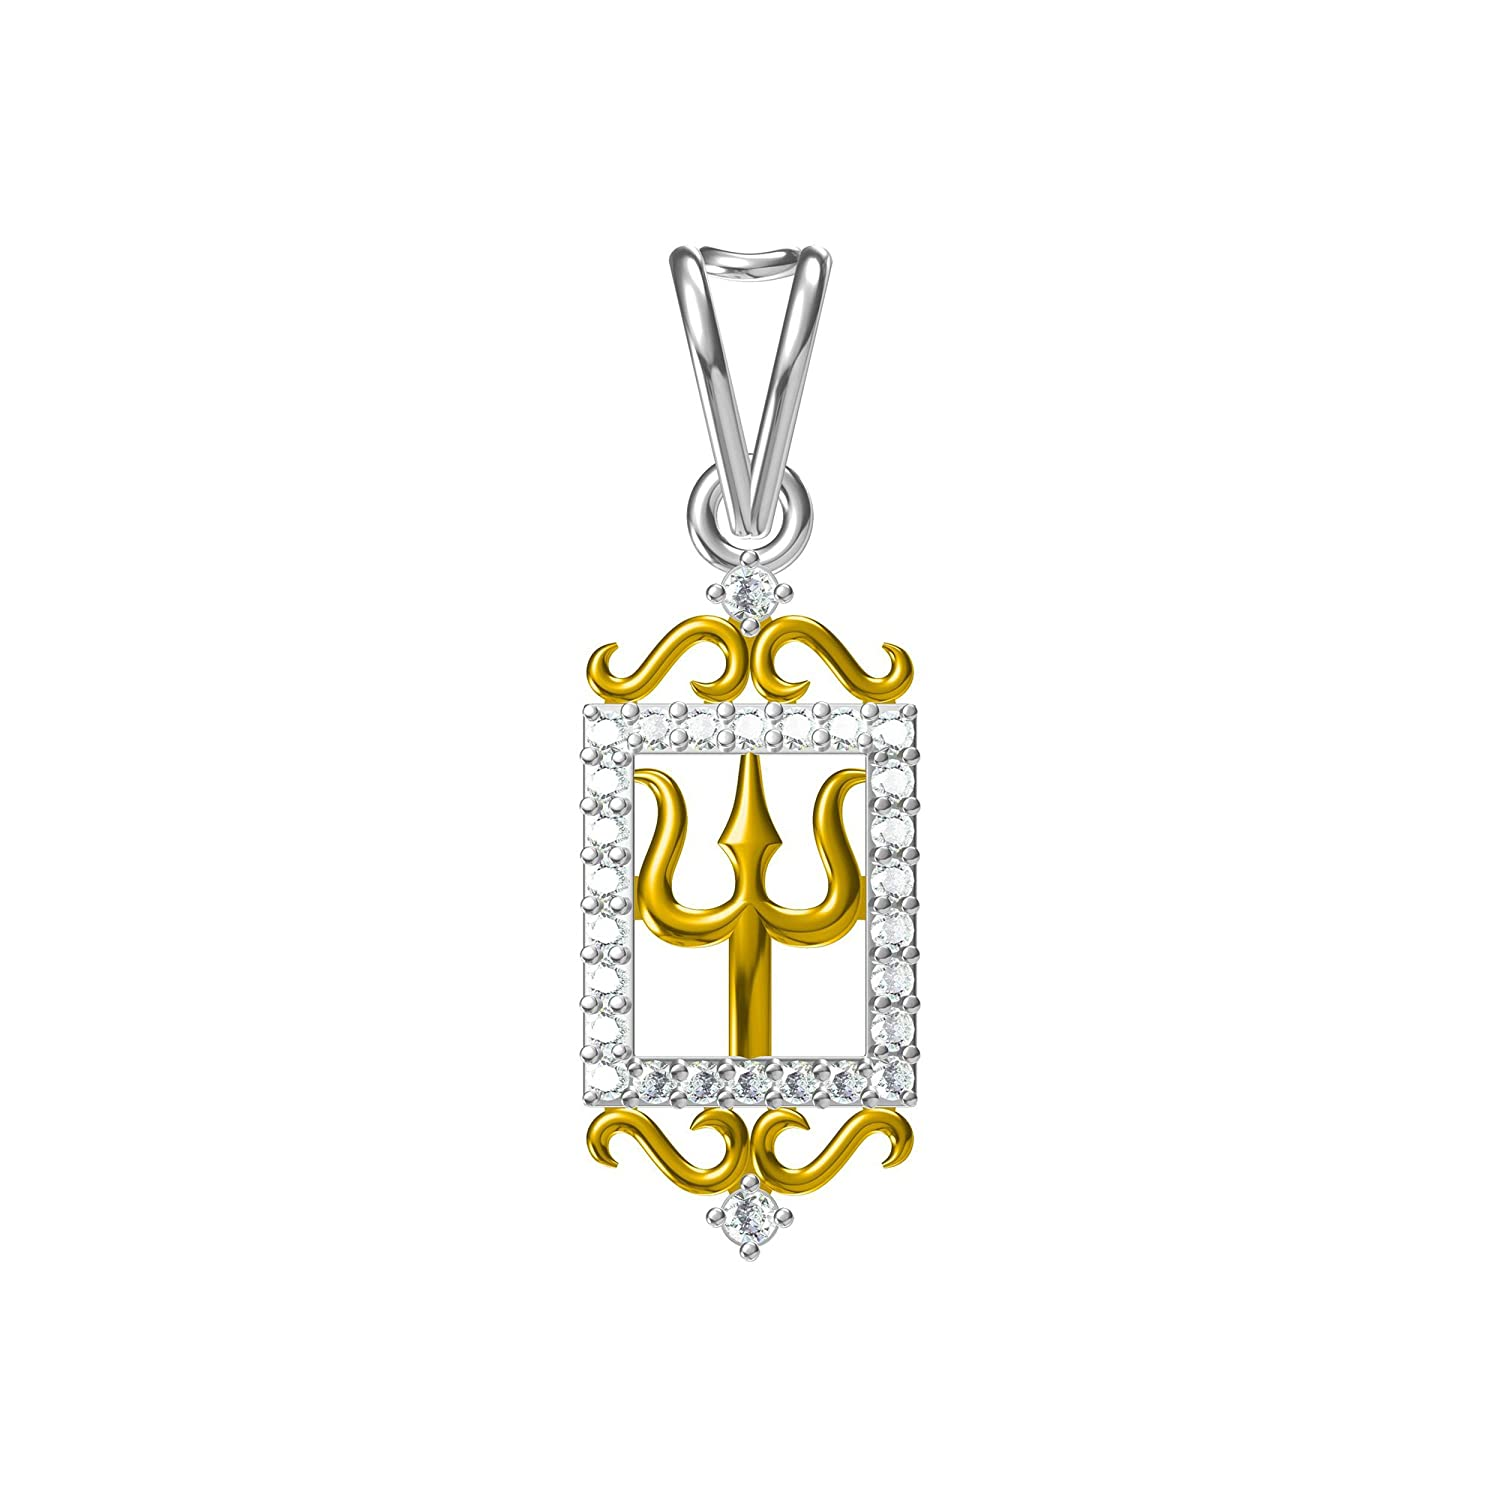 Suhana Jewellery Simulated Diamond Studded Fashion Pendant Necklace in 14K Yellow Gold Plated With Box Chain